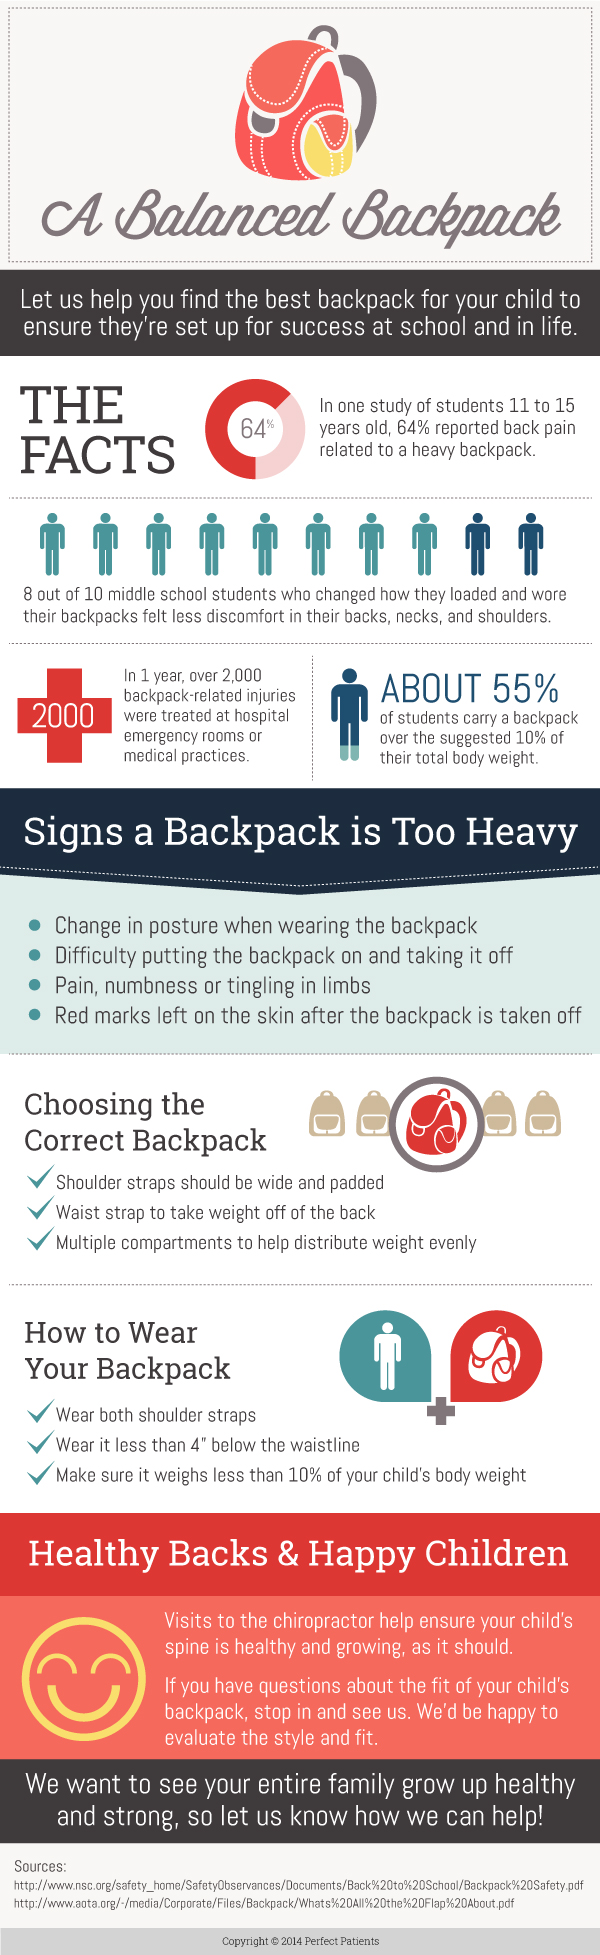 A Balanced Backpack Infographic